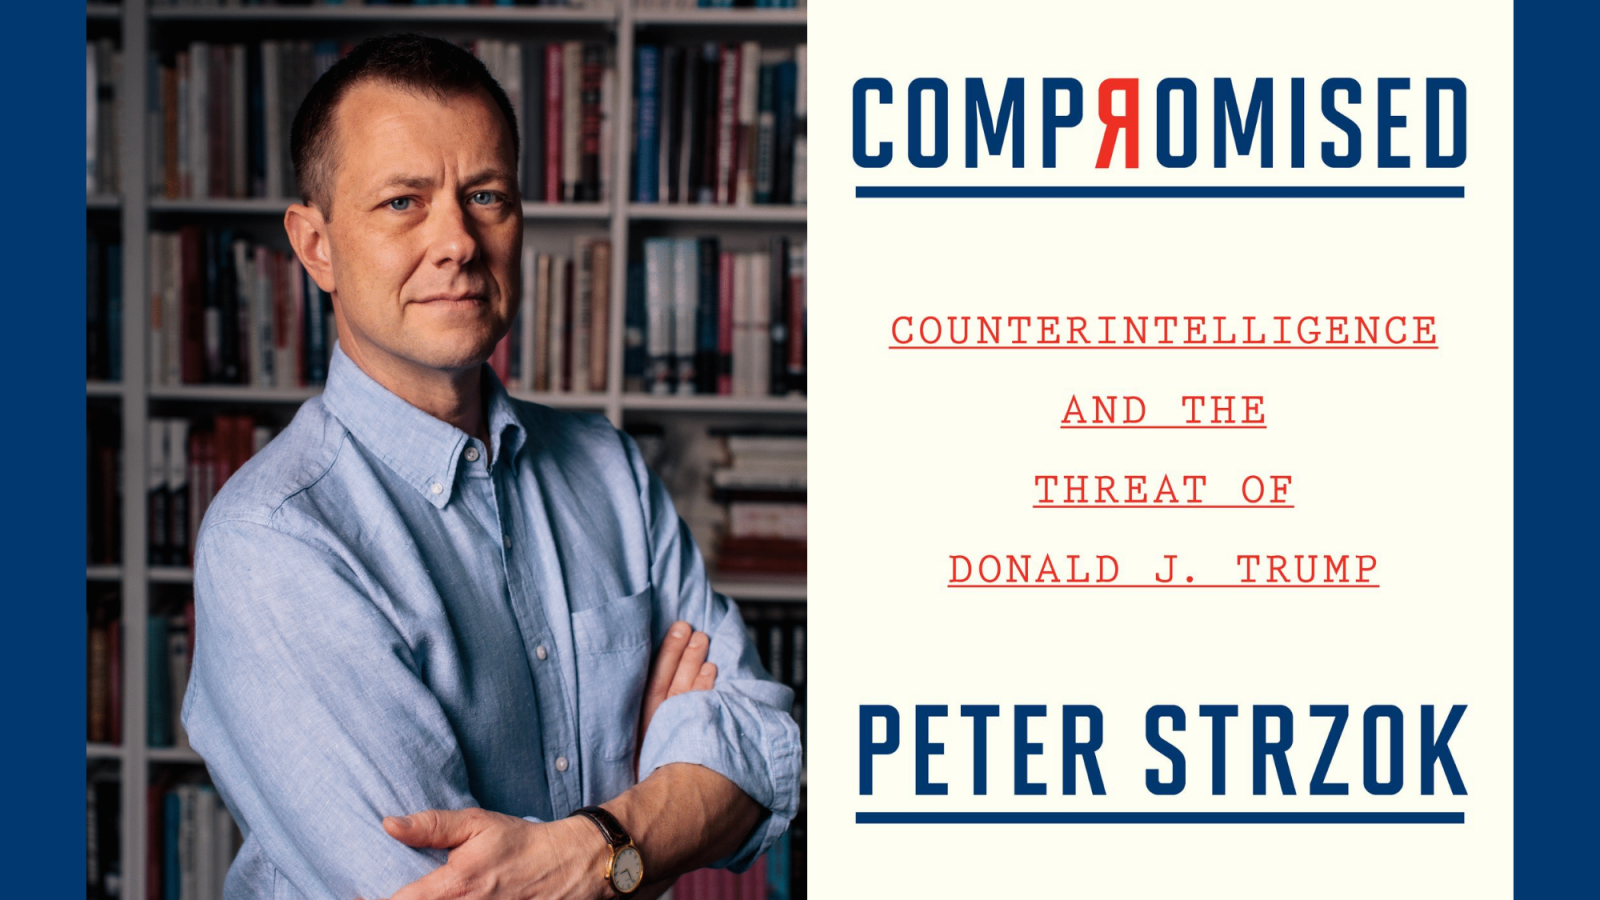 Peter Strzok standing in front of a bookshelf with the cover of his book, Compromised, next to him